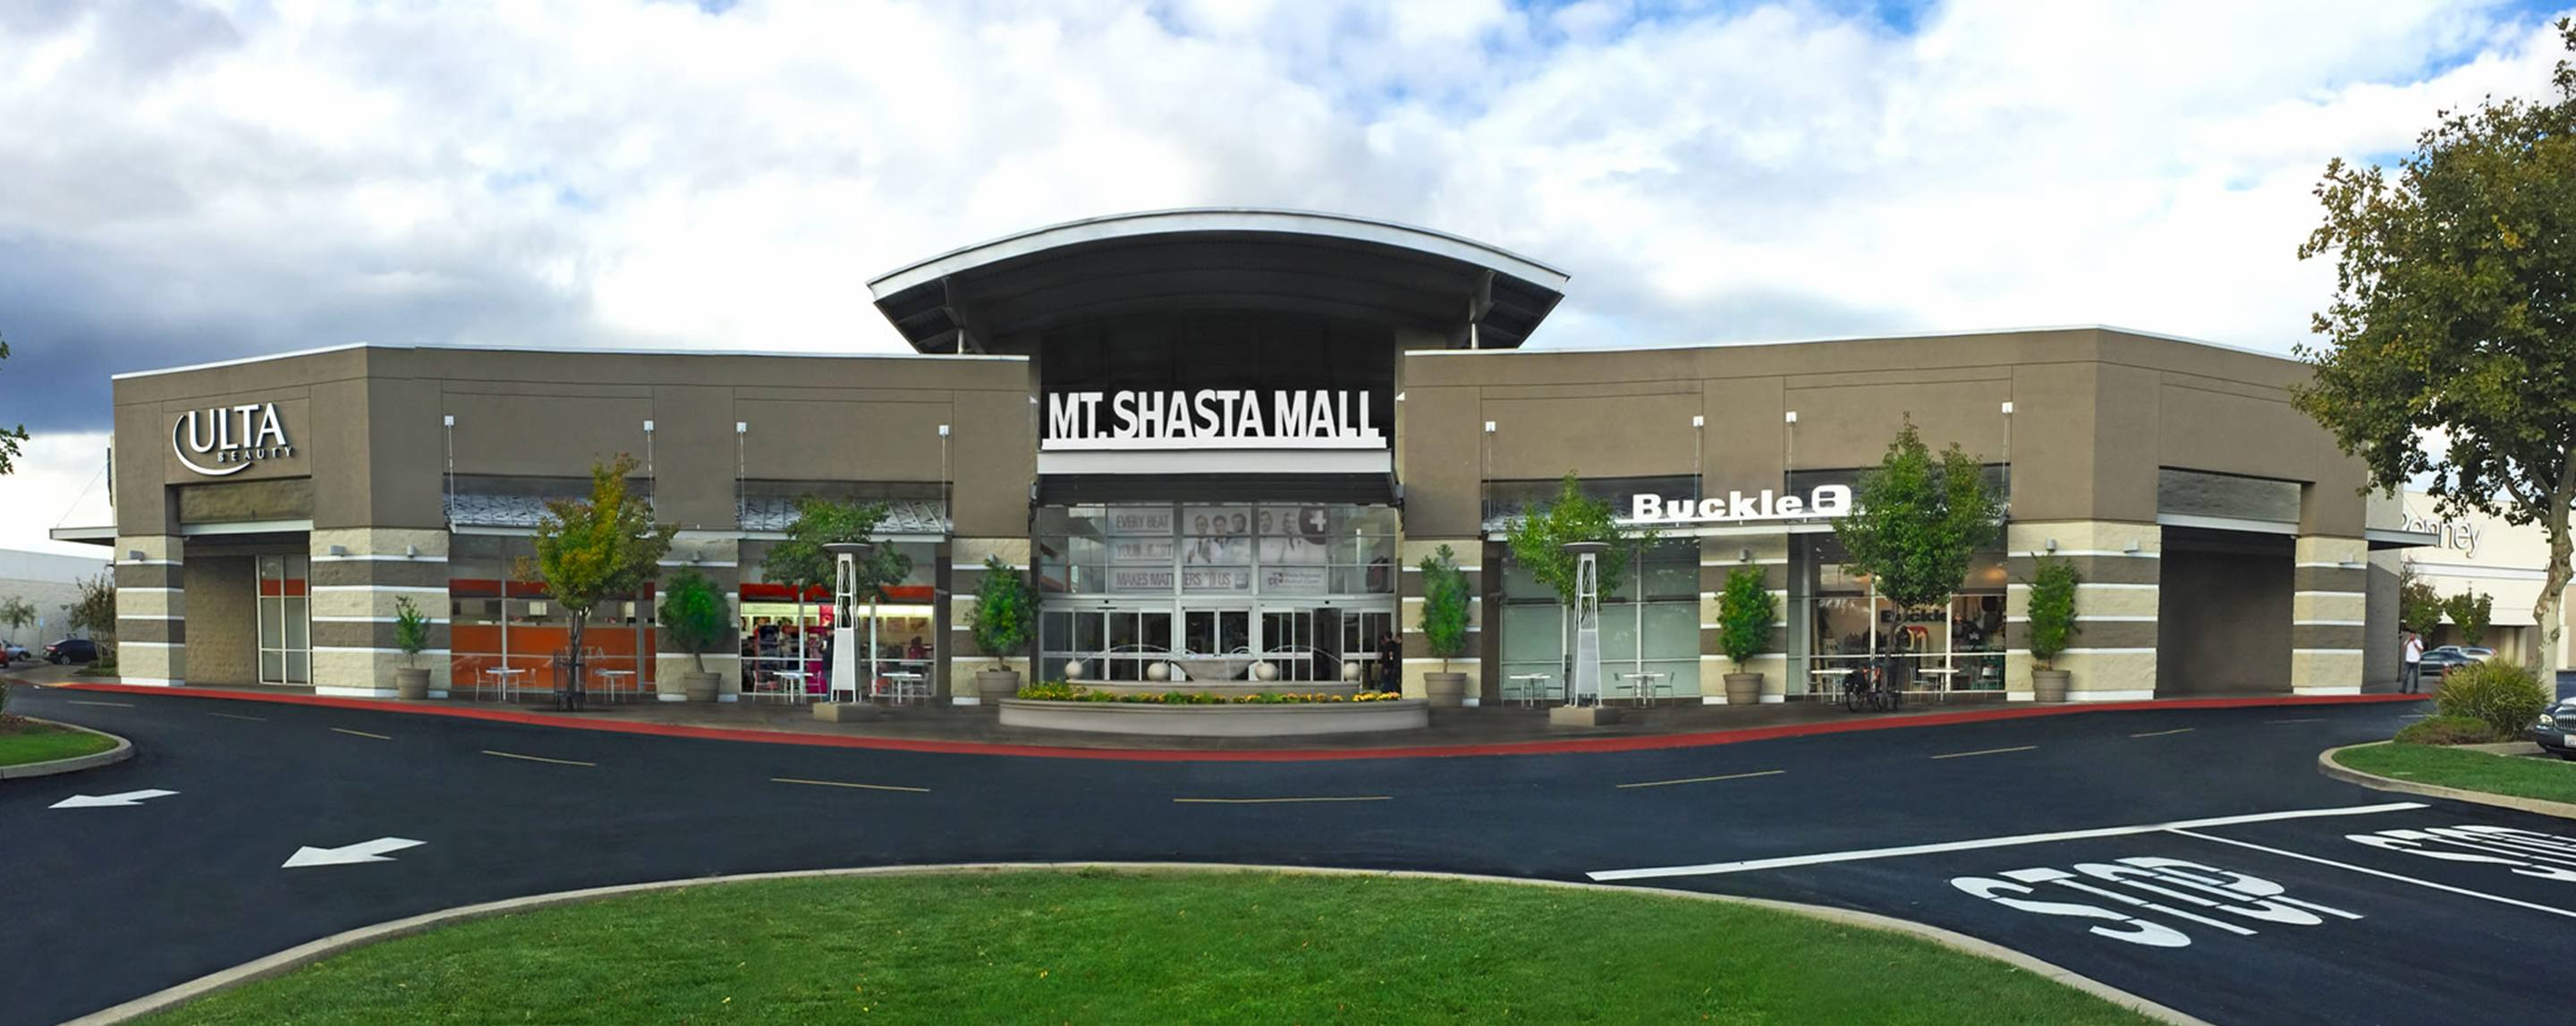 A freshly paved road leads up to the Shasta Mall. An Ulta storefront stands on the left.